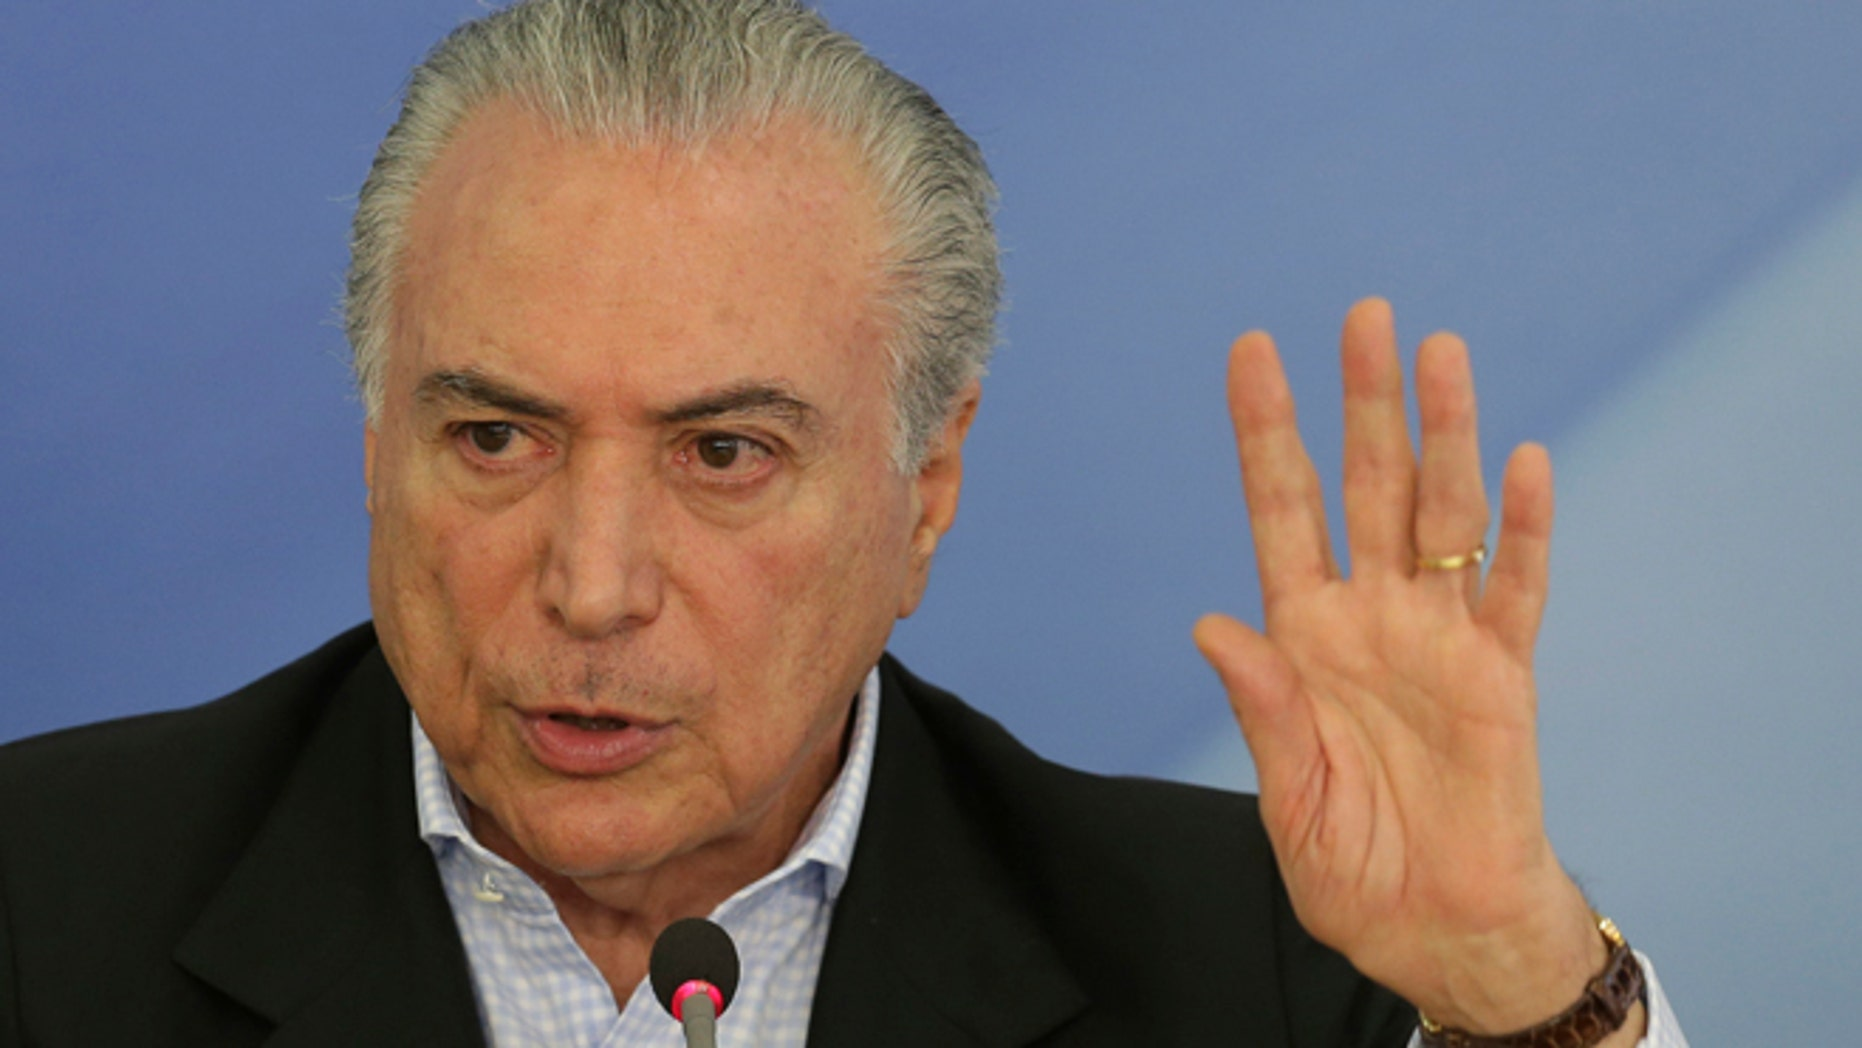 Brazil's President Michel Temer speaks to the press about proposed anti-corruption legislation in Brasilia, Brazil, Sunday, Nov. 27, 2016. Many Brazilians are concerned the legislation to toughen prosecution of corruption might perversely offer amnesty to politicians who had previously engaged in the practice. (AP Photo/Eraldo Peres)